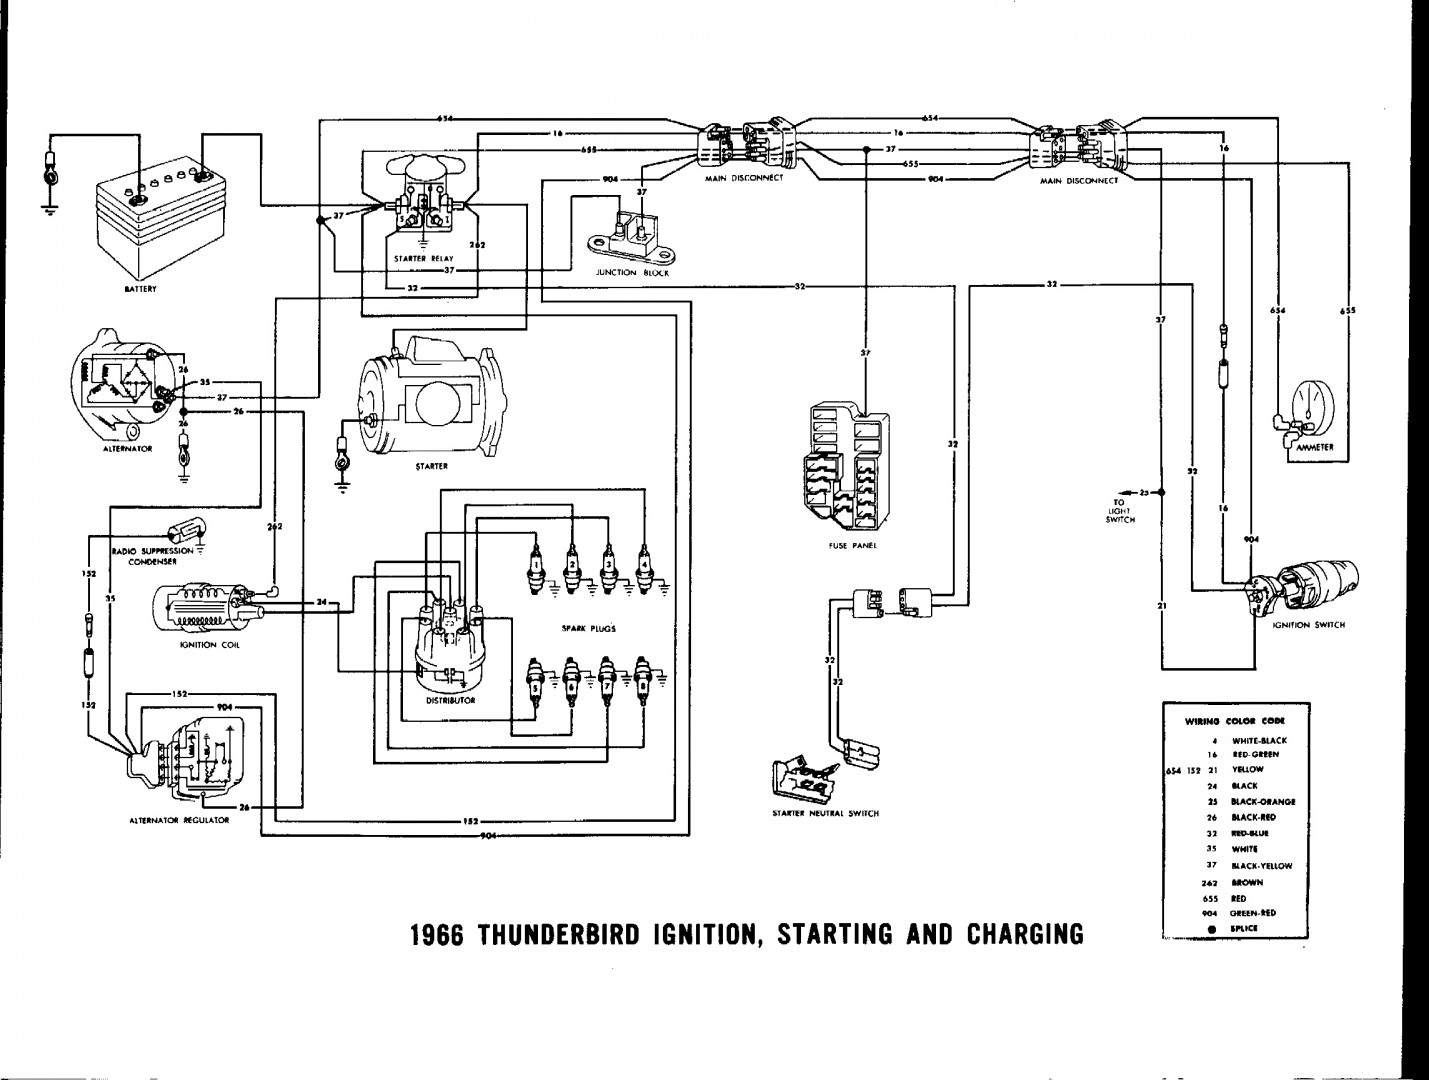 1966 Thunderbird iginition diagram ford thunderbird shop manuals